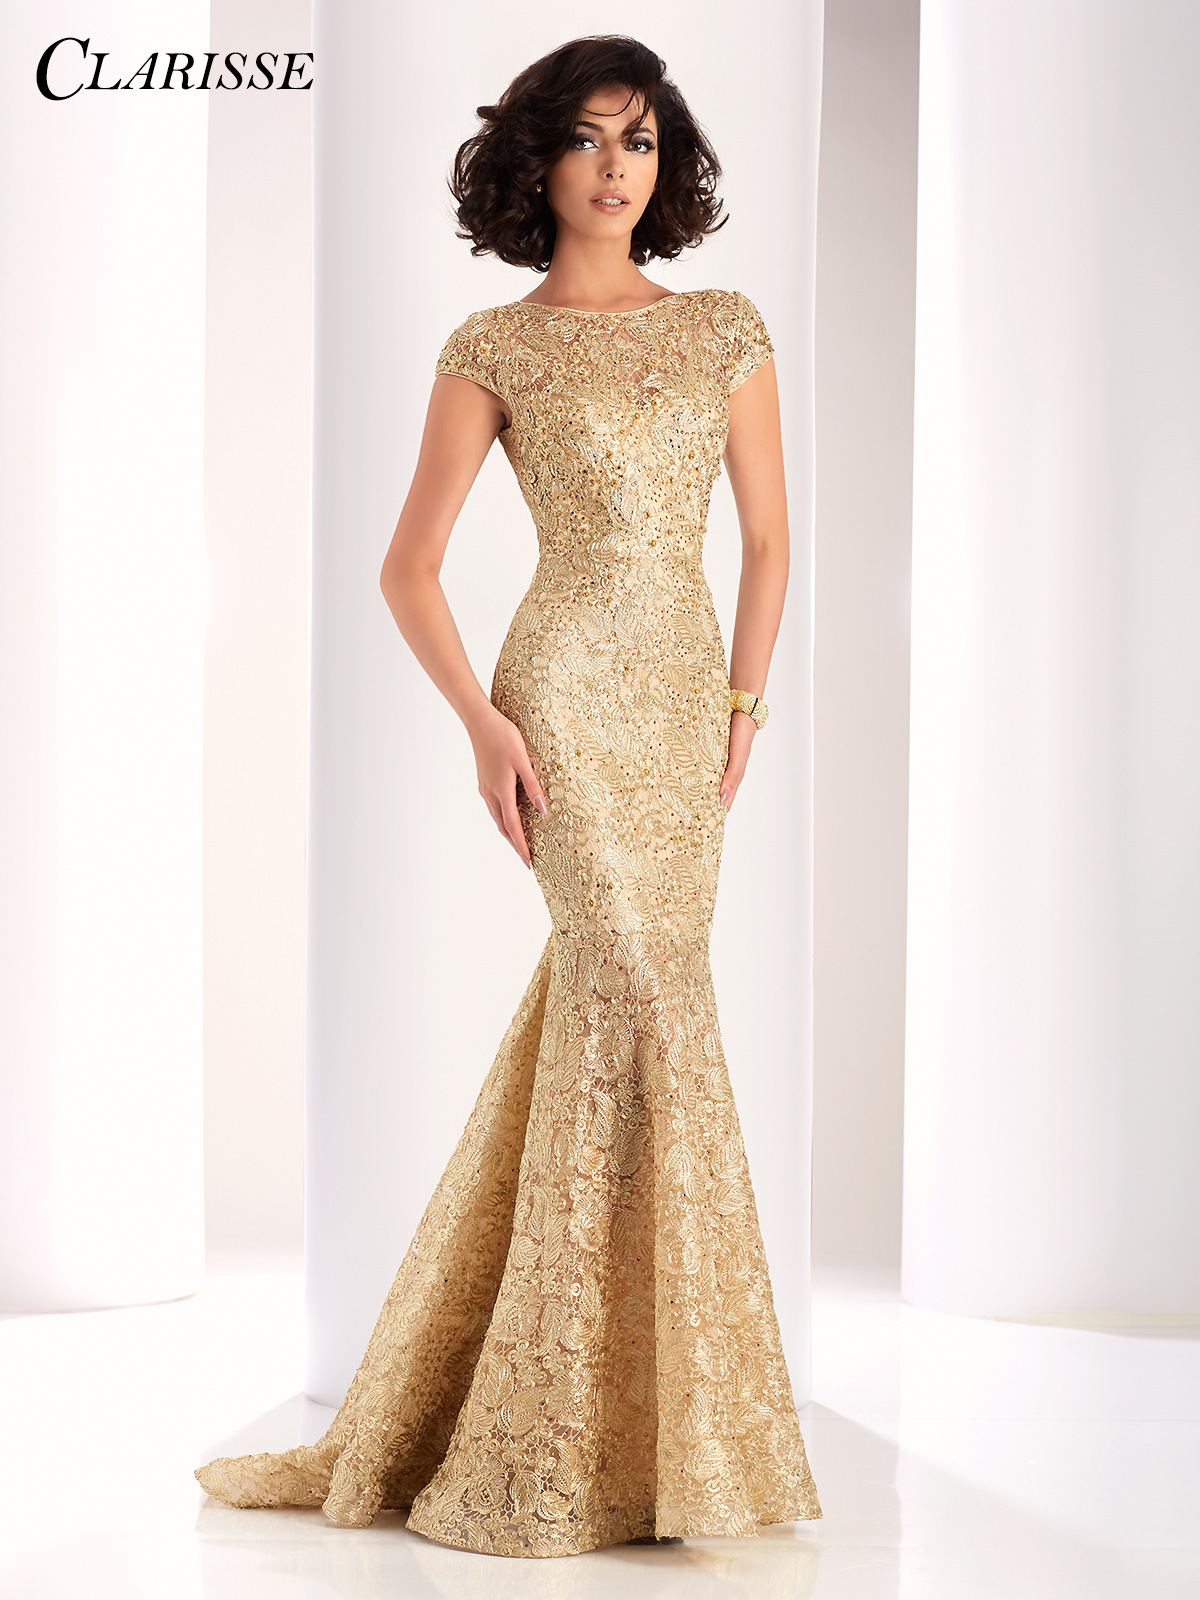 Elegant Lace Mermaid Evening Gown 4852 2 Colors